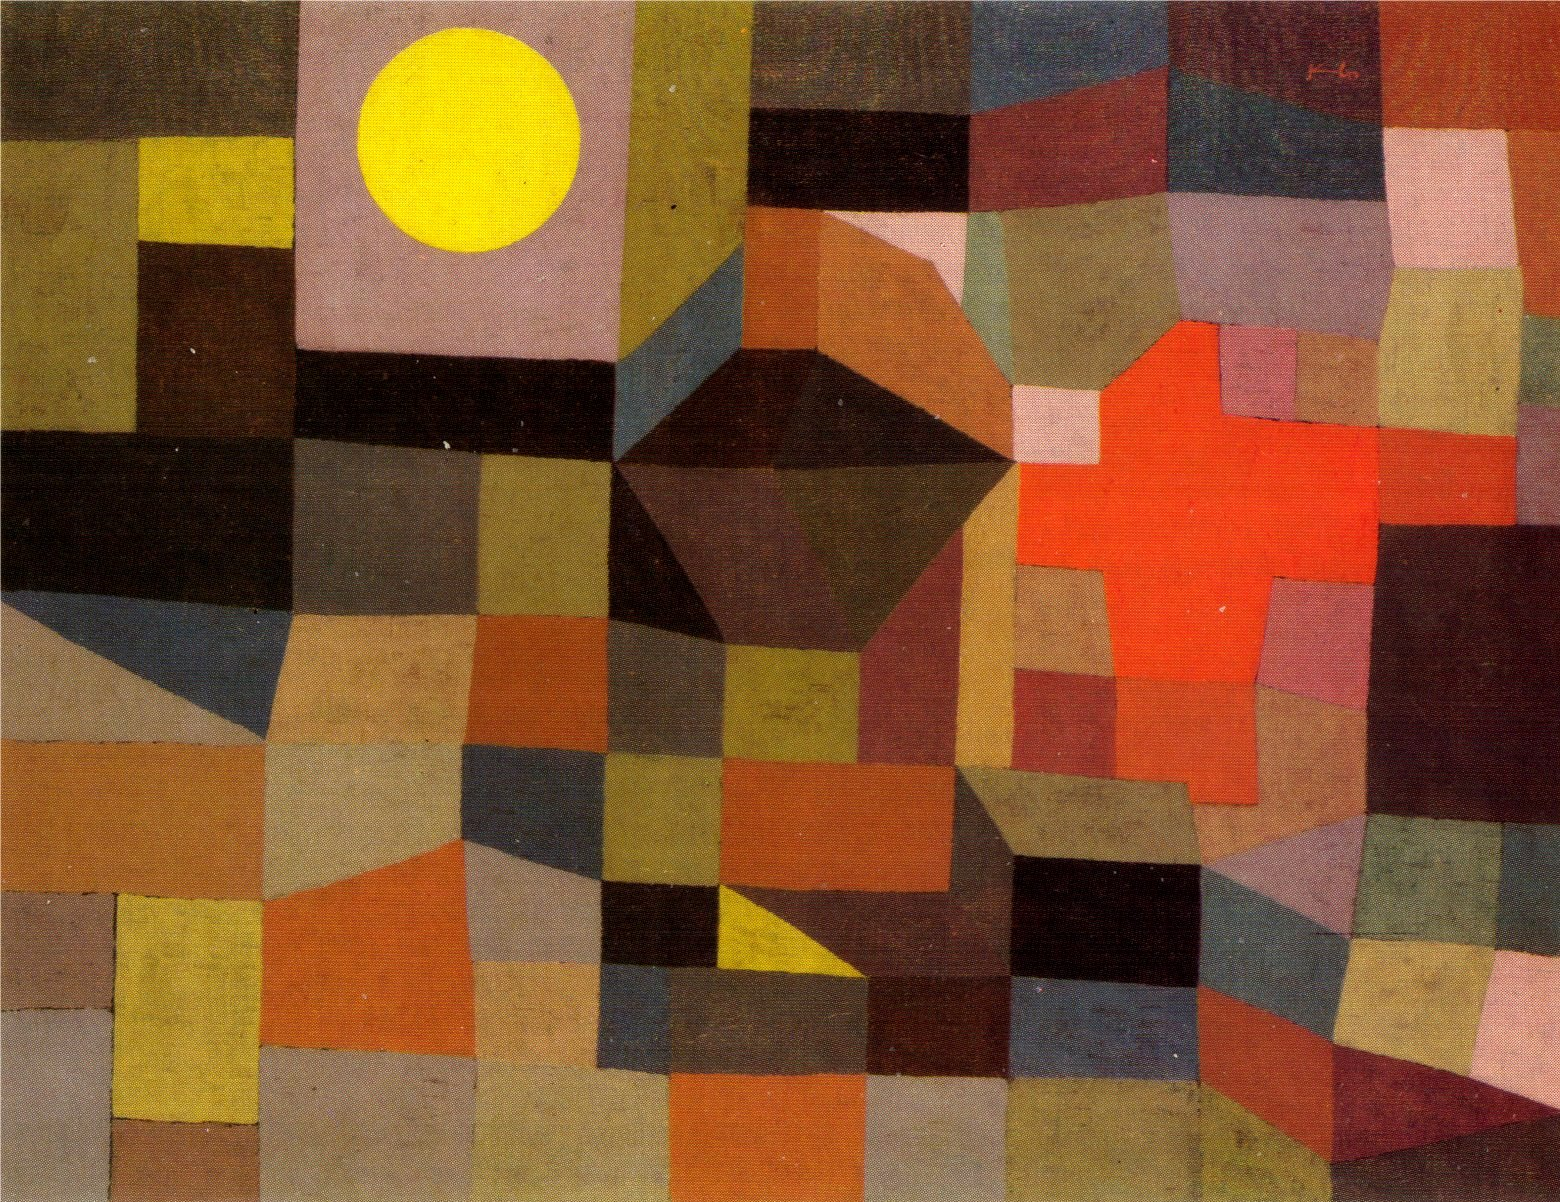 Paul Klee Pinturas Solitary Dog Sculptor I Painter Klee Paul Part 10 Links